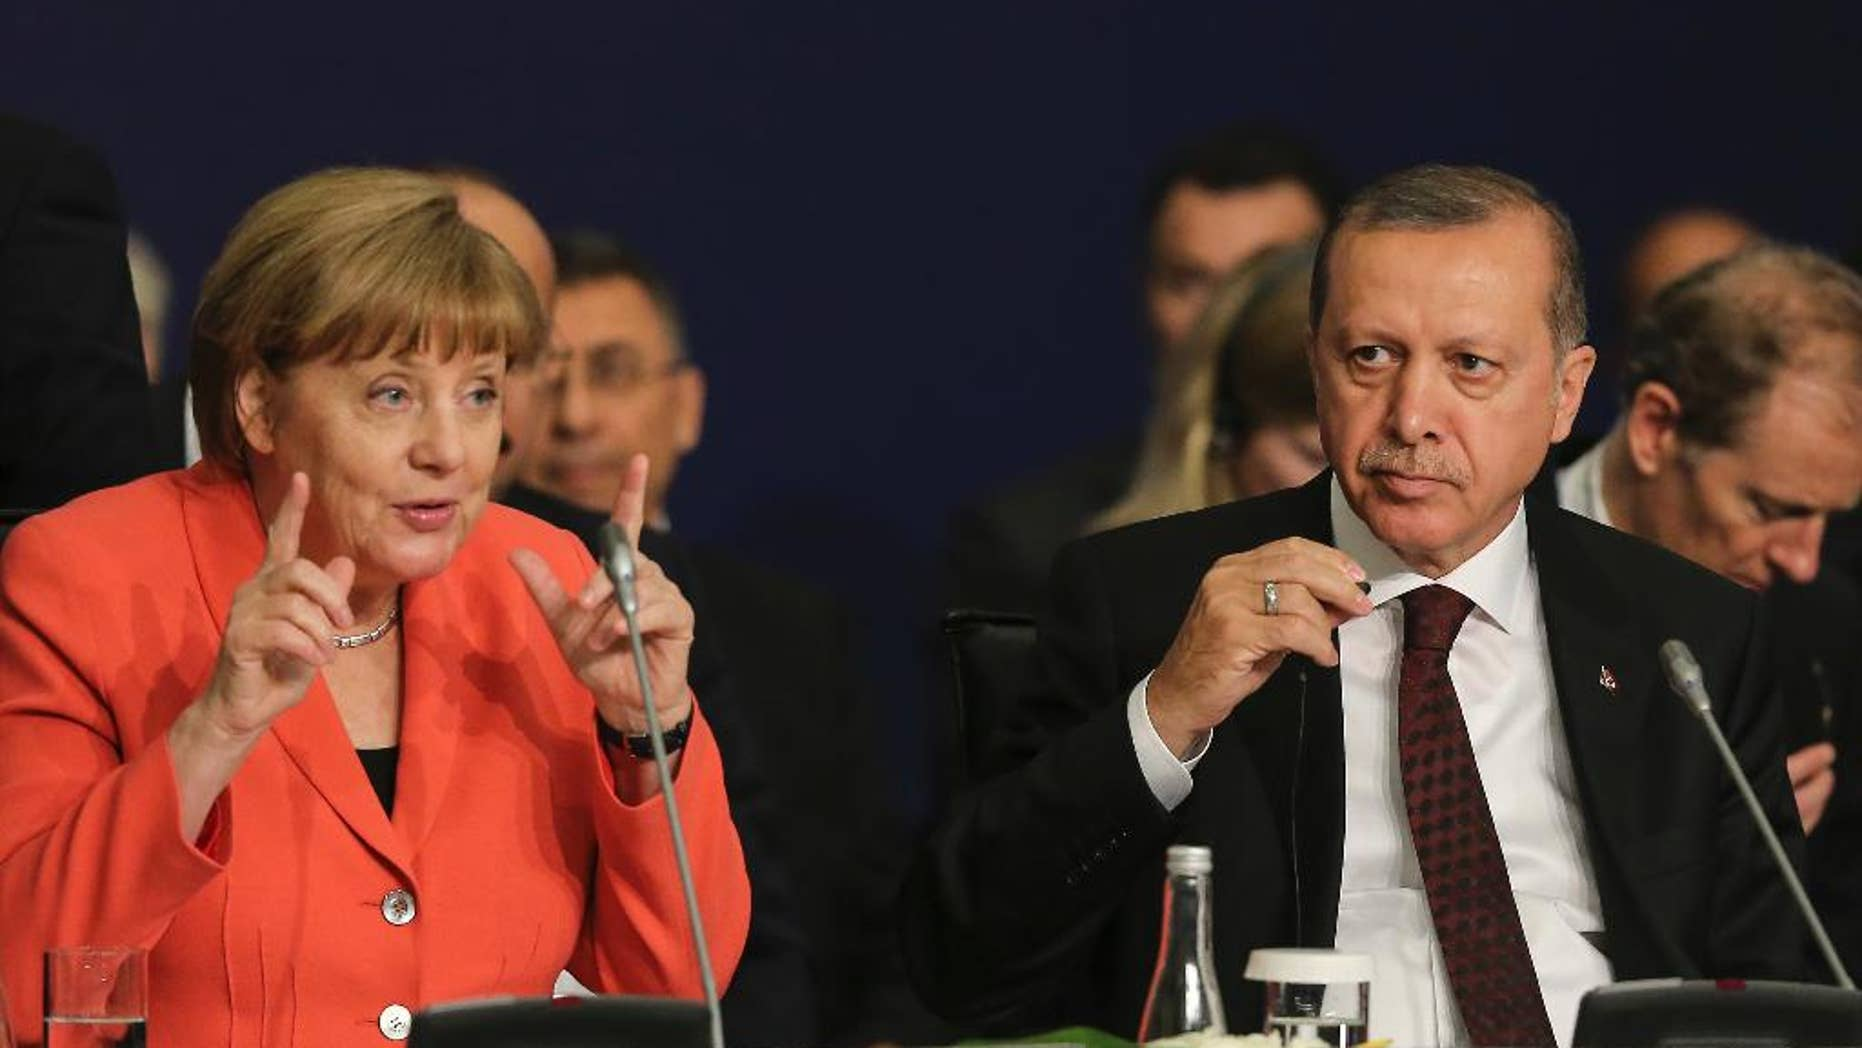 """German Chancellor Angela Merkel, left, talks as Turkey's President Recep Tayyip Erdogan listens during a roundtable meeting on """"Political Leadership to Prevent and End Conflicts"""" at the World Humanitarian Summit in Istanbul, Monday, May 23, 2016. World leaders and representatives of humanitarian organisations from across the globe converge in Istanbul on May 23-24, 2016 for the first World Humanitarian Summit, focused on how to reform a system many judge broken. (Salih Zeki Fazlioglu/Anadolu, Pool Photo via AP)"""